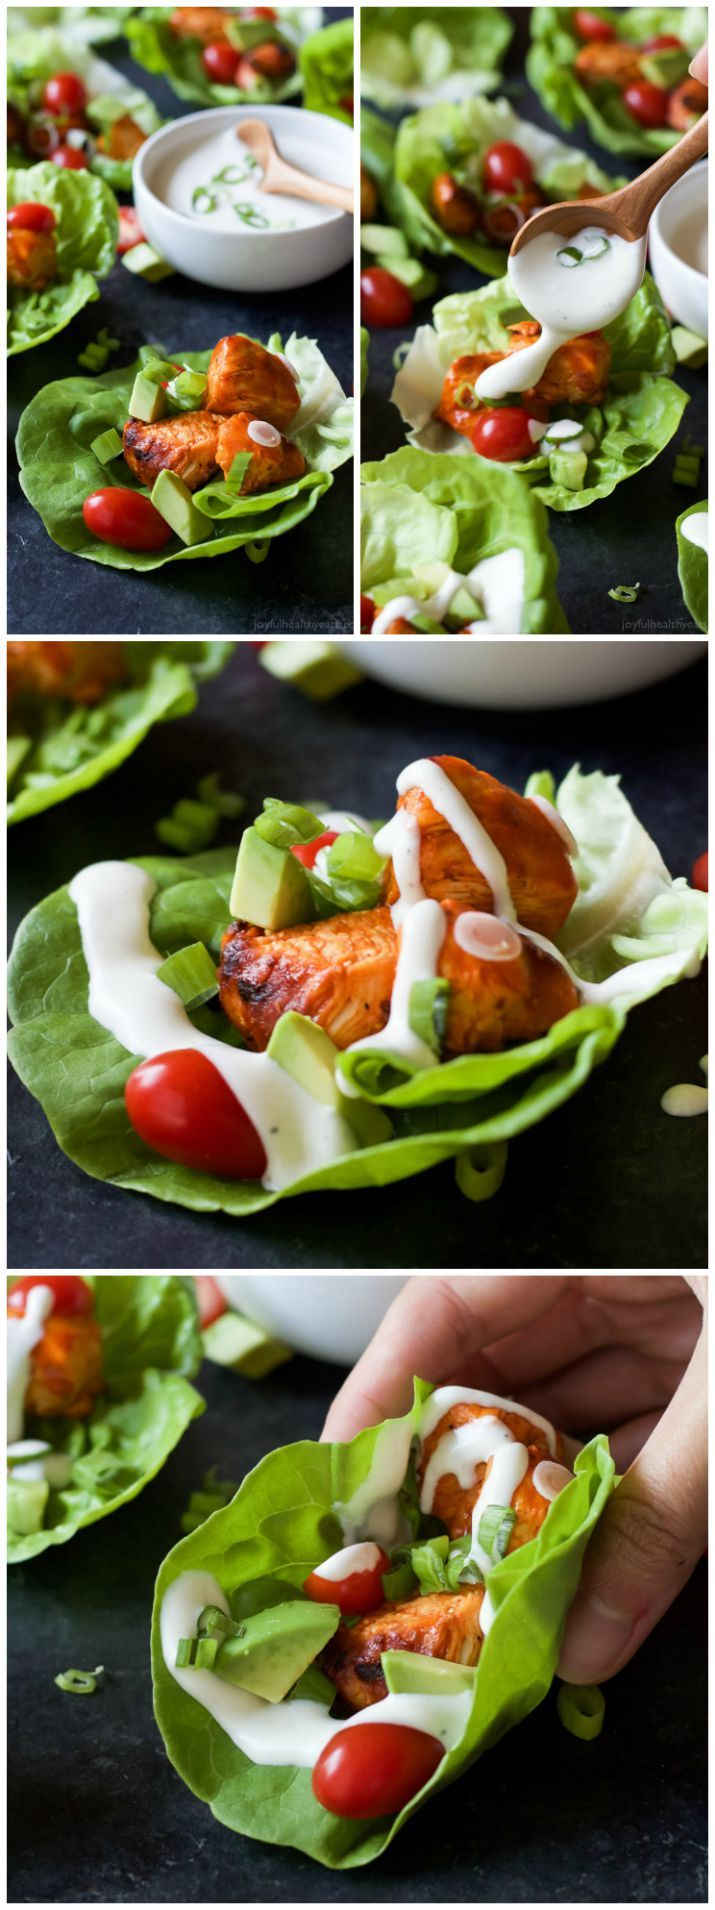 Get game day ready with these healthier low calorie Grilled Buffalo Chicken Lettuce Wraps!